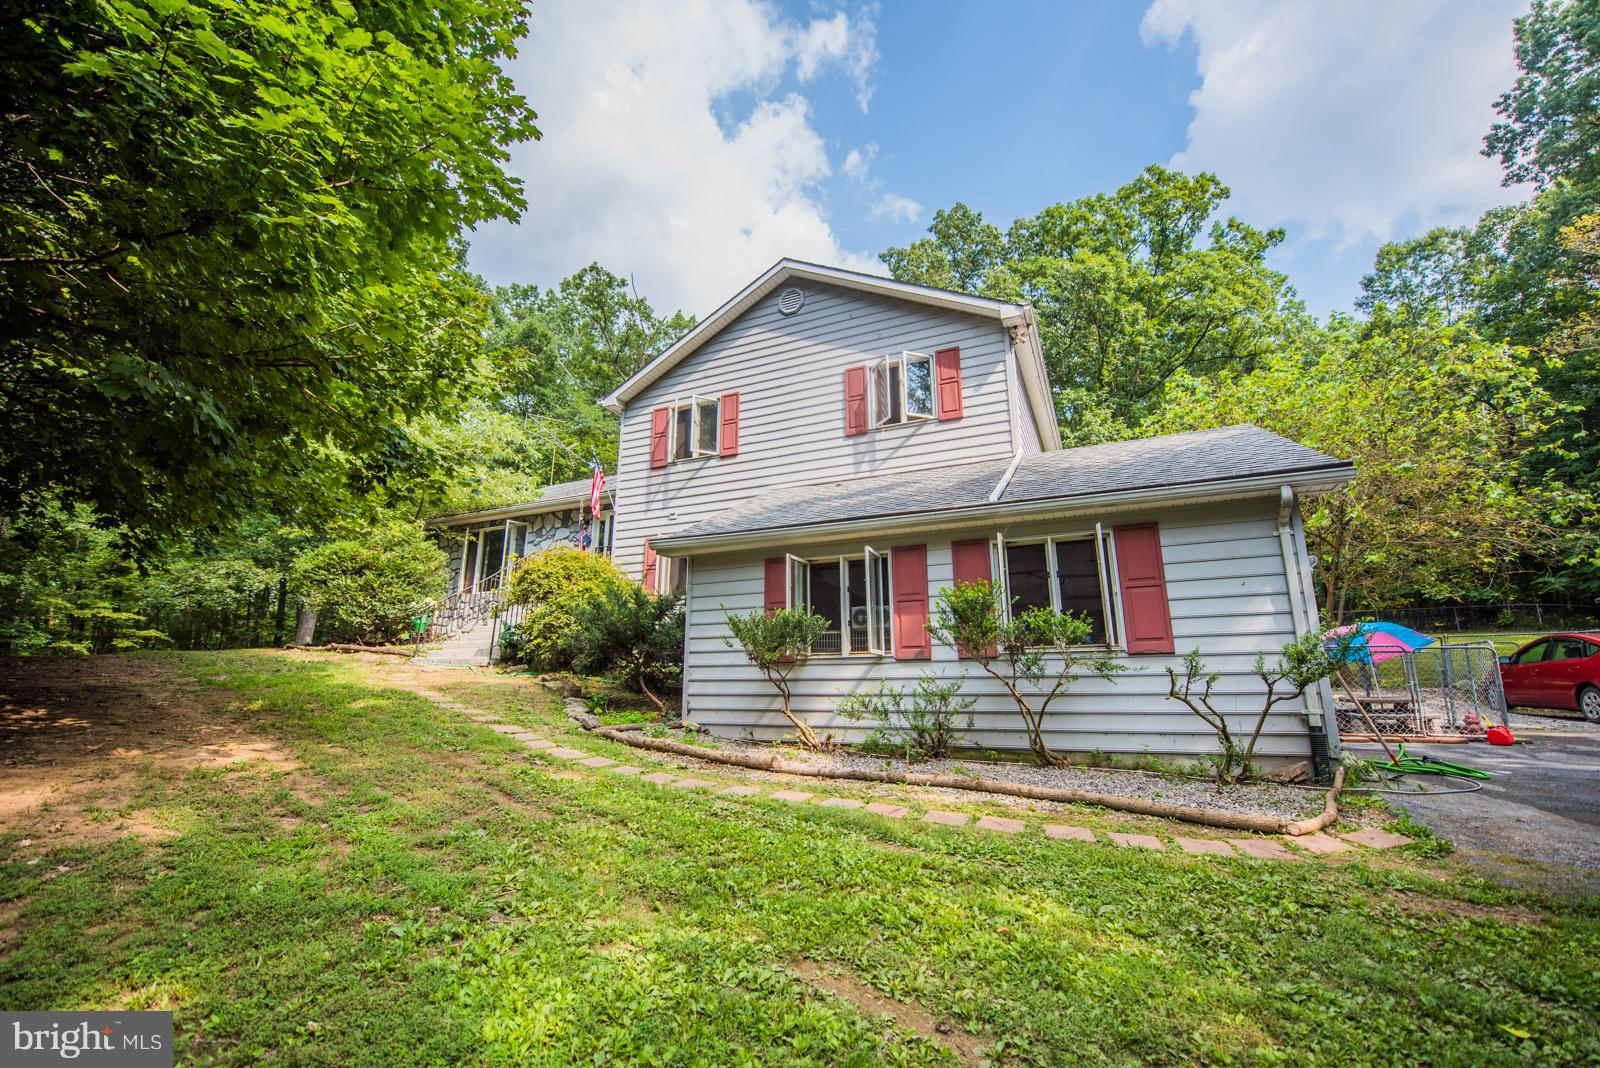 214 MIRA MAPLE DRIVE, MARTINSBURG, WV 25405